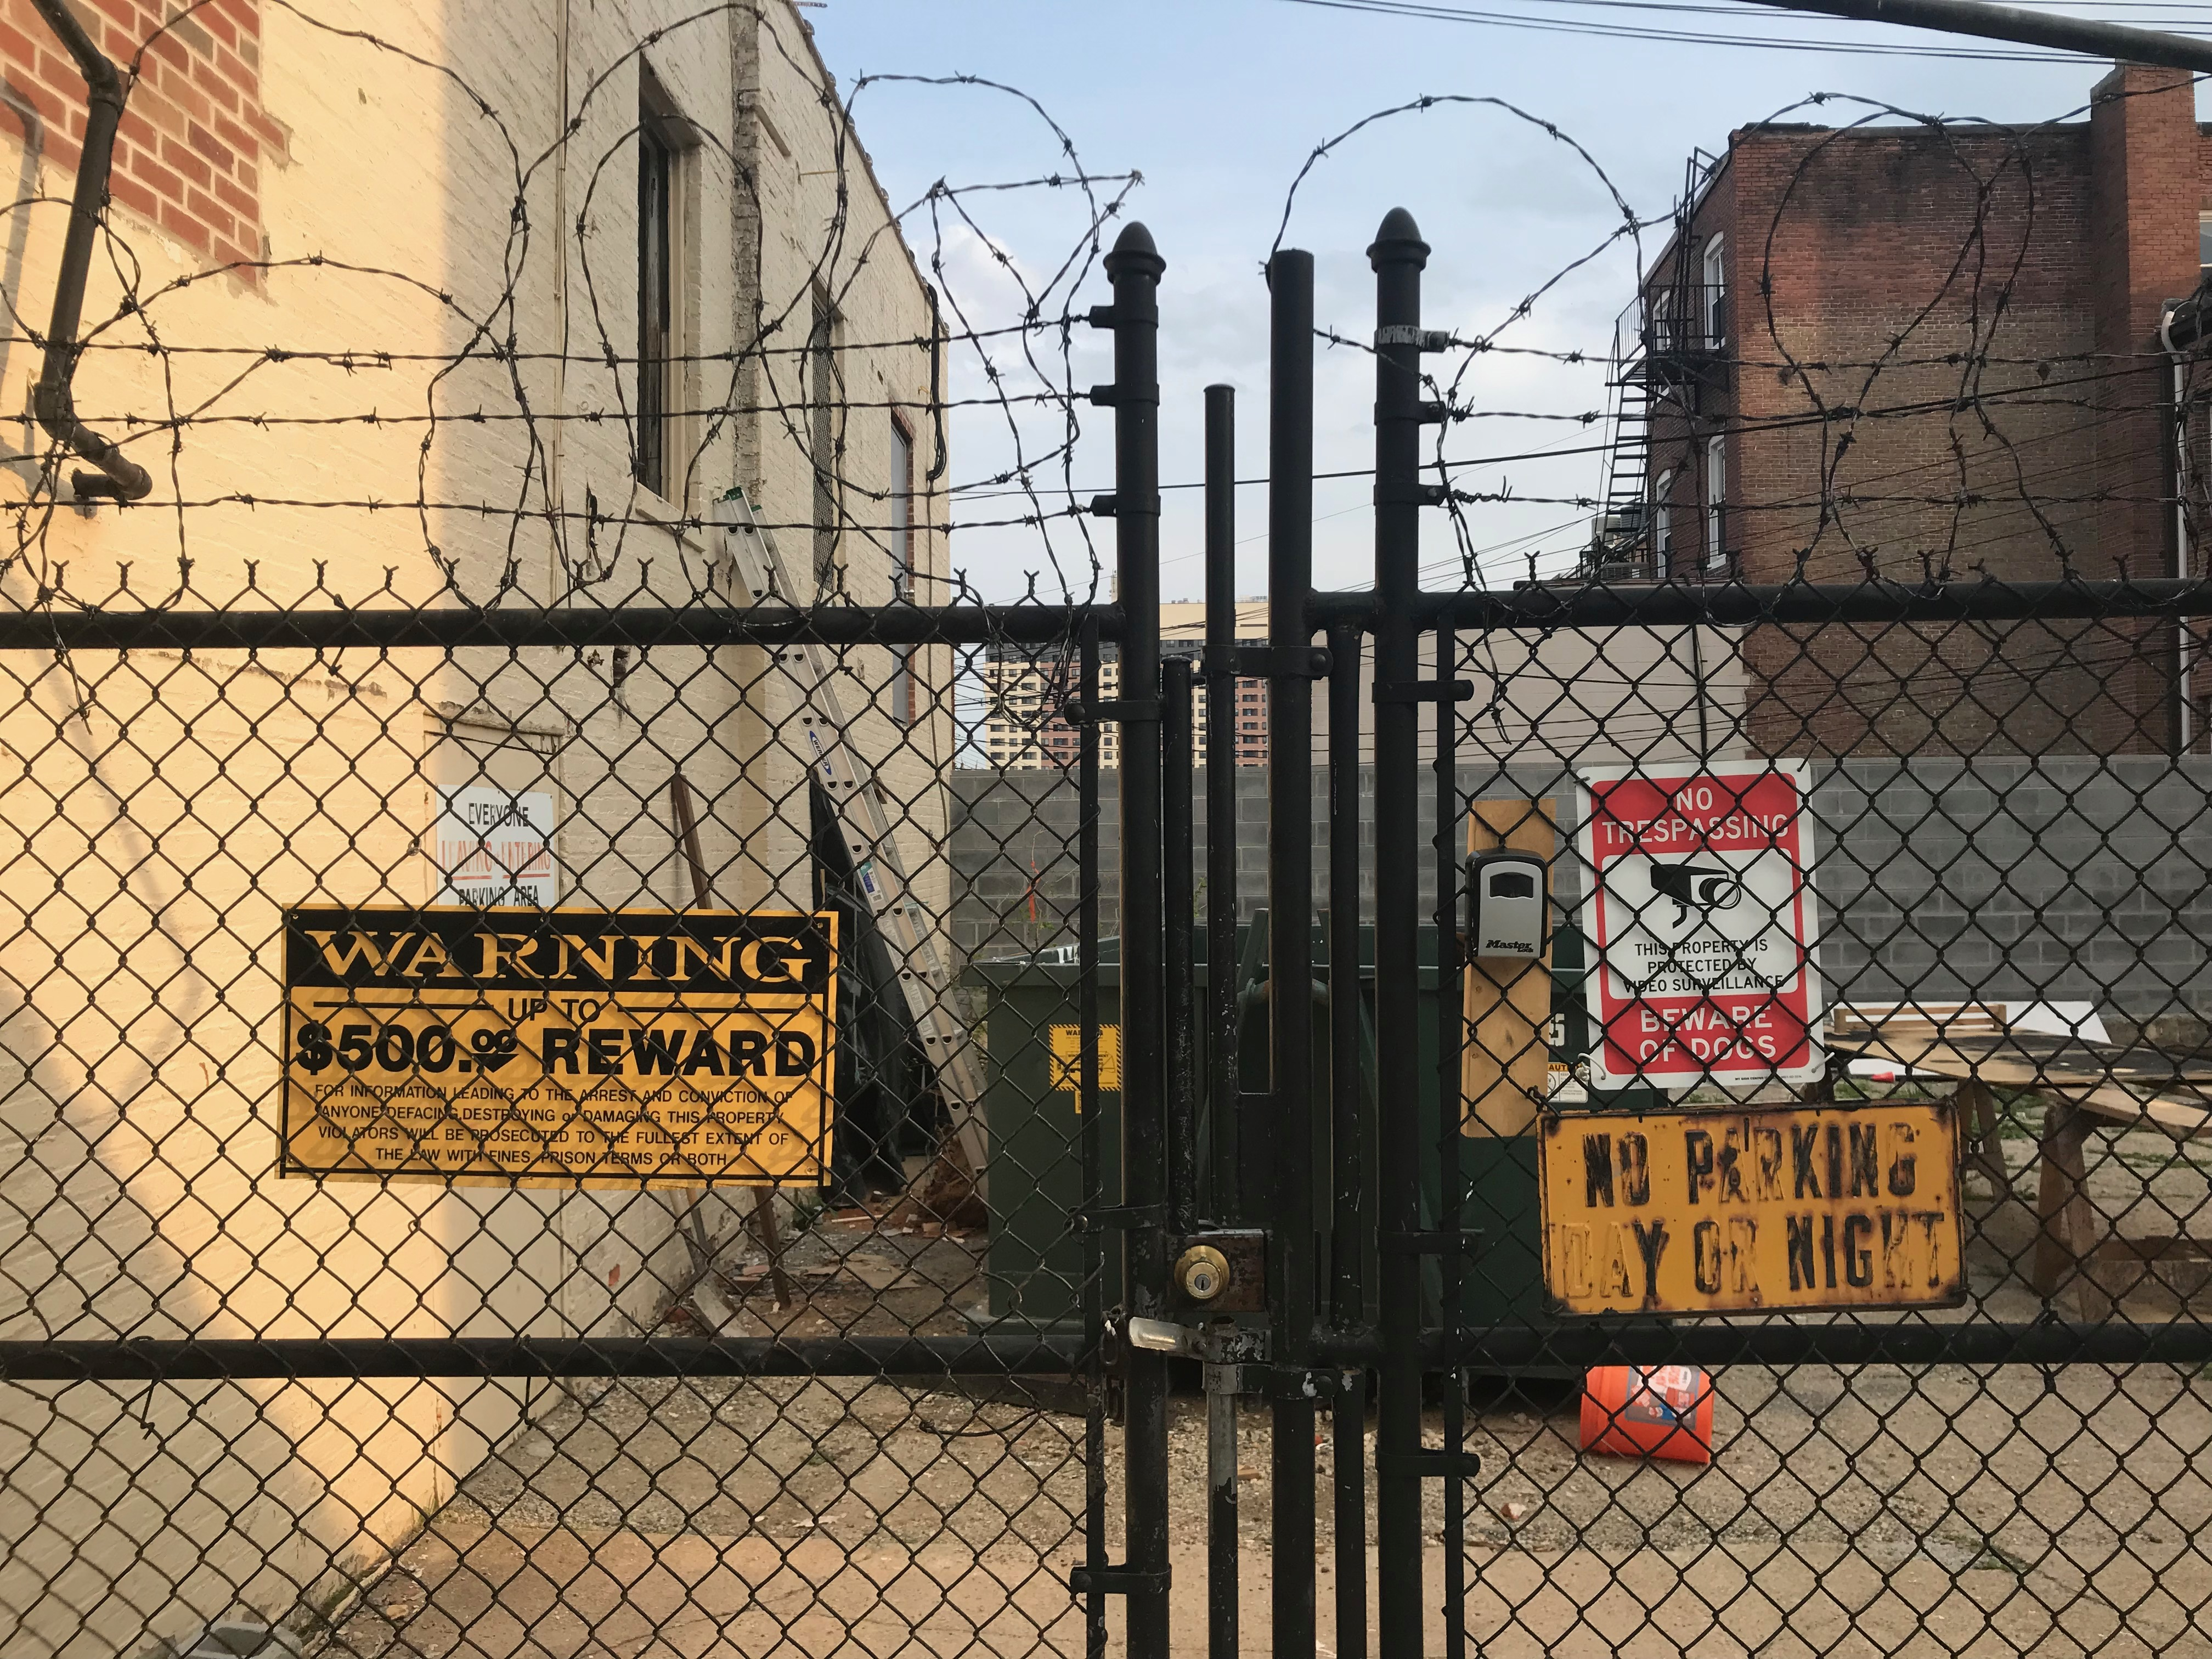 Signs and fence along w. 23rd street between maryland avenue and morton street, baltimore, md photo